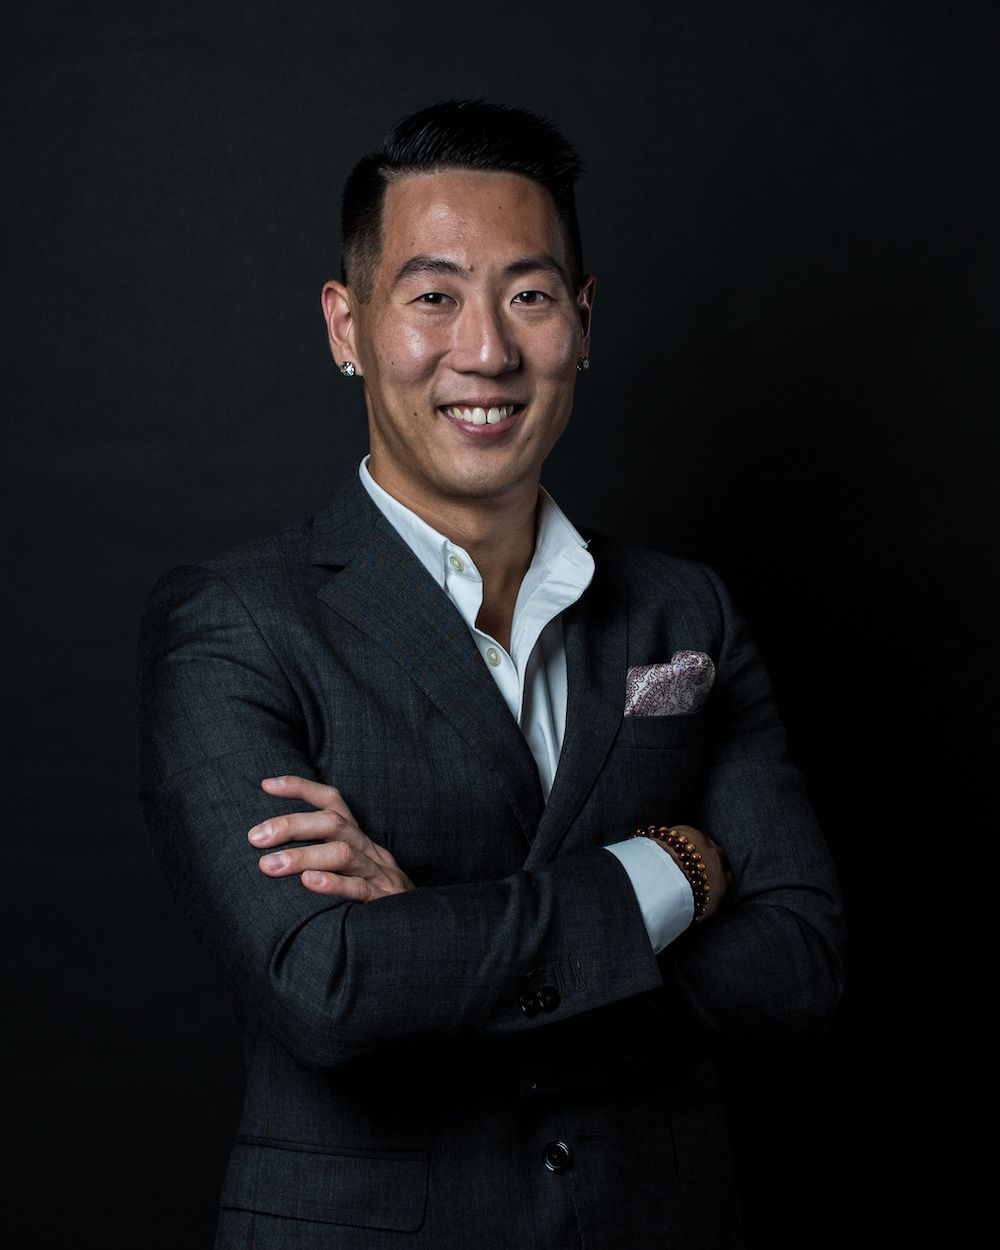 Andrew Yang weaing a suit and smiling at the camera